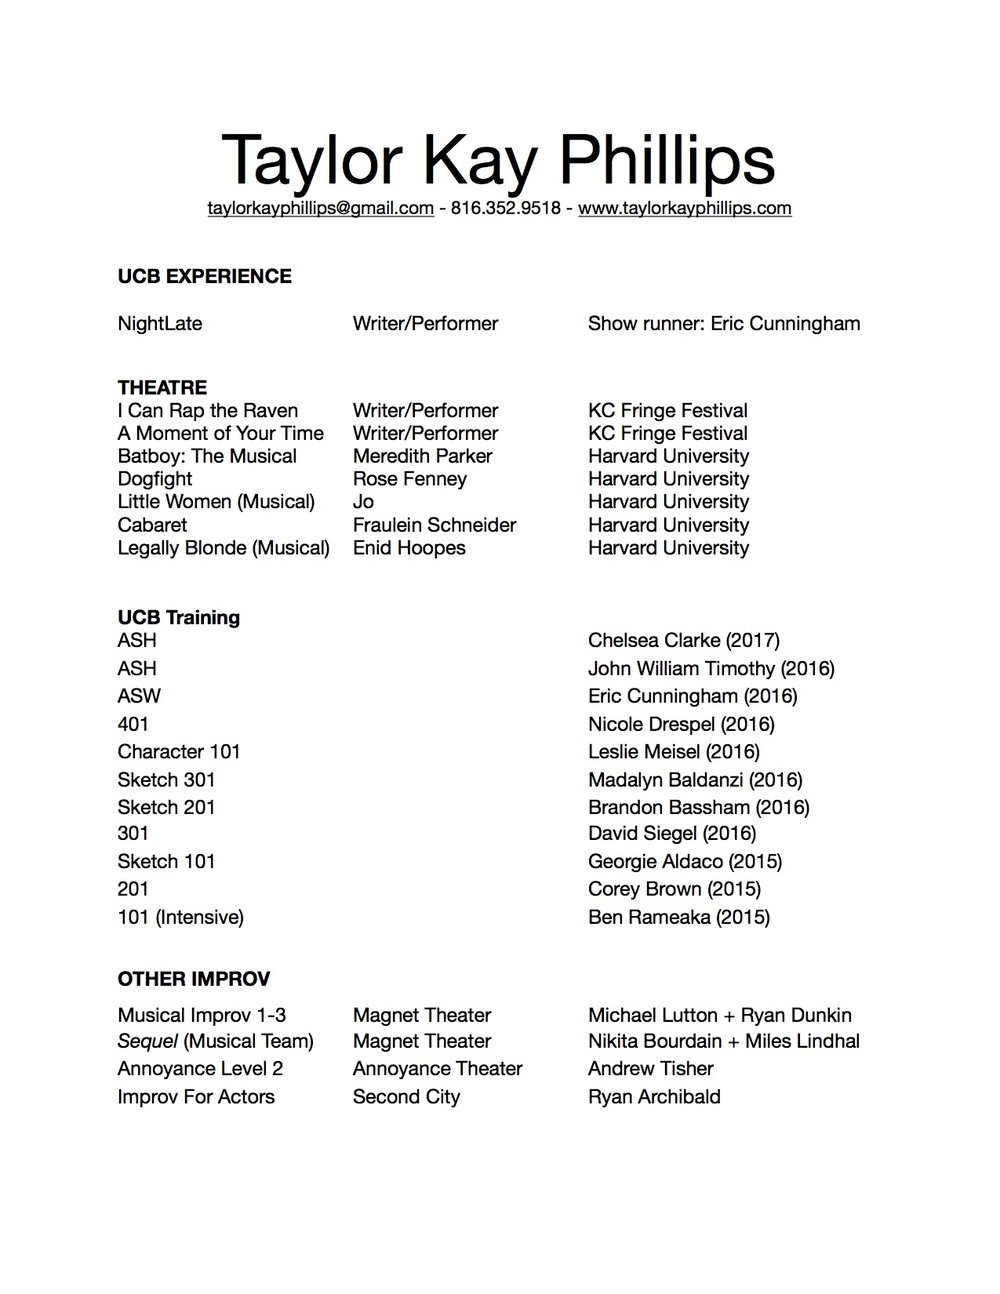 Theatre Resume Taylor Kay Phillips.jpg